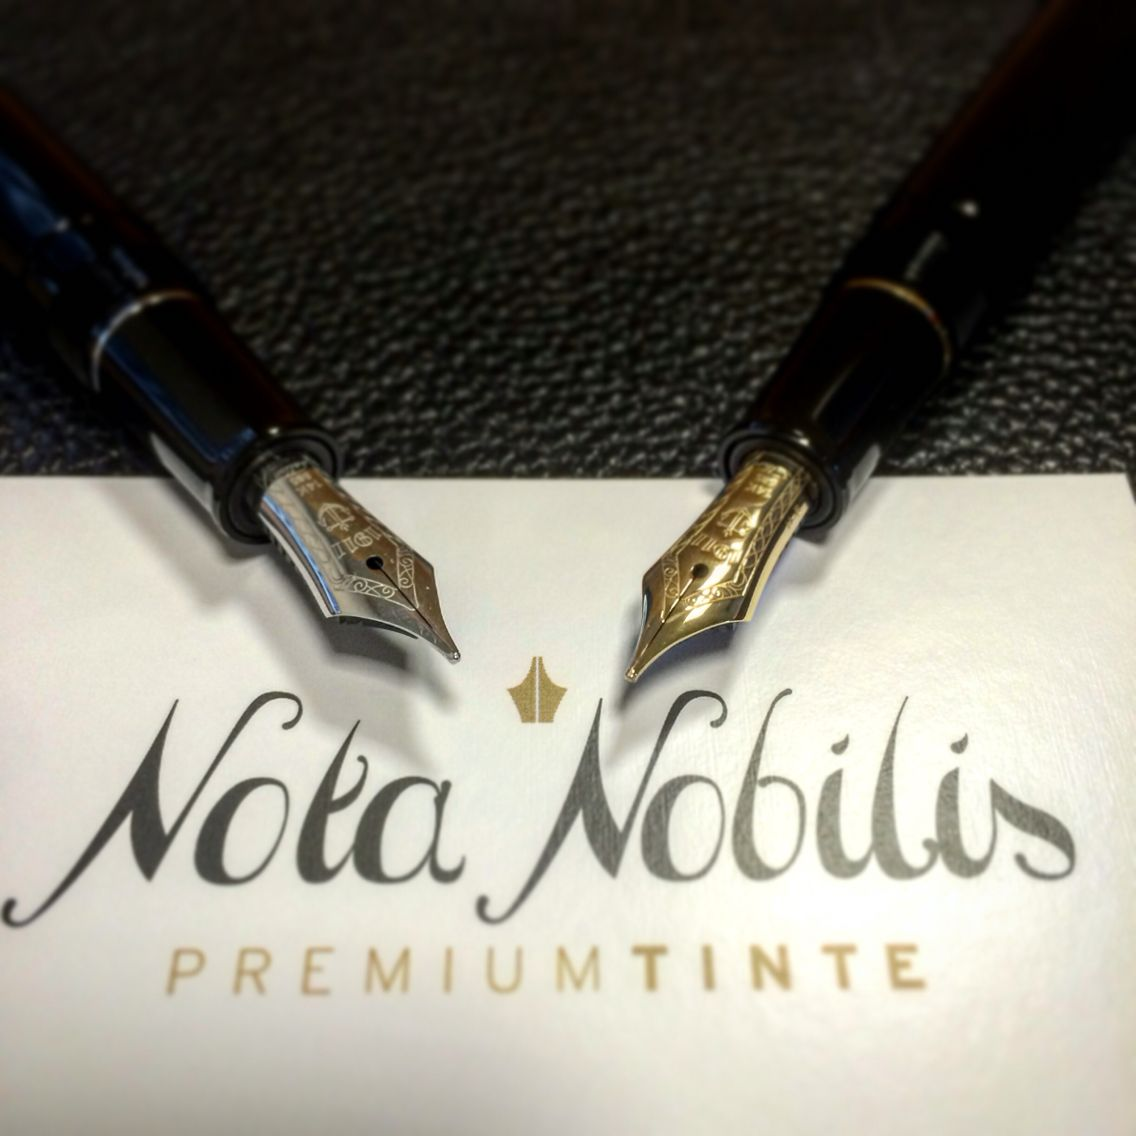 Neue Füllfeder gesucht? Sailor's Professional Gear Slim mit geschmeidiger 14k-Goldfeder entweder in Gold oder Silber. Soon www.nota-nobilis.at   #Füller #Füllfeder #fountainpen #Sailor #notiz #note #signature #unterschrift #ink #tinte #Premium #Premiumtinte #gold #silber #silver #14kgold #14k #10X_your_handwriting #10X